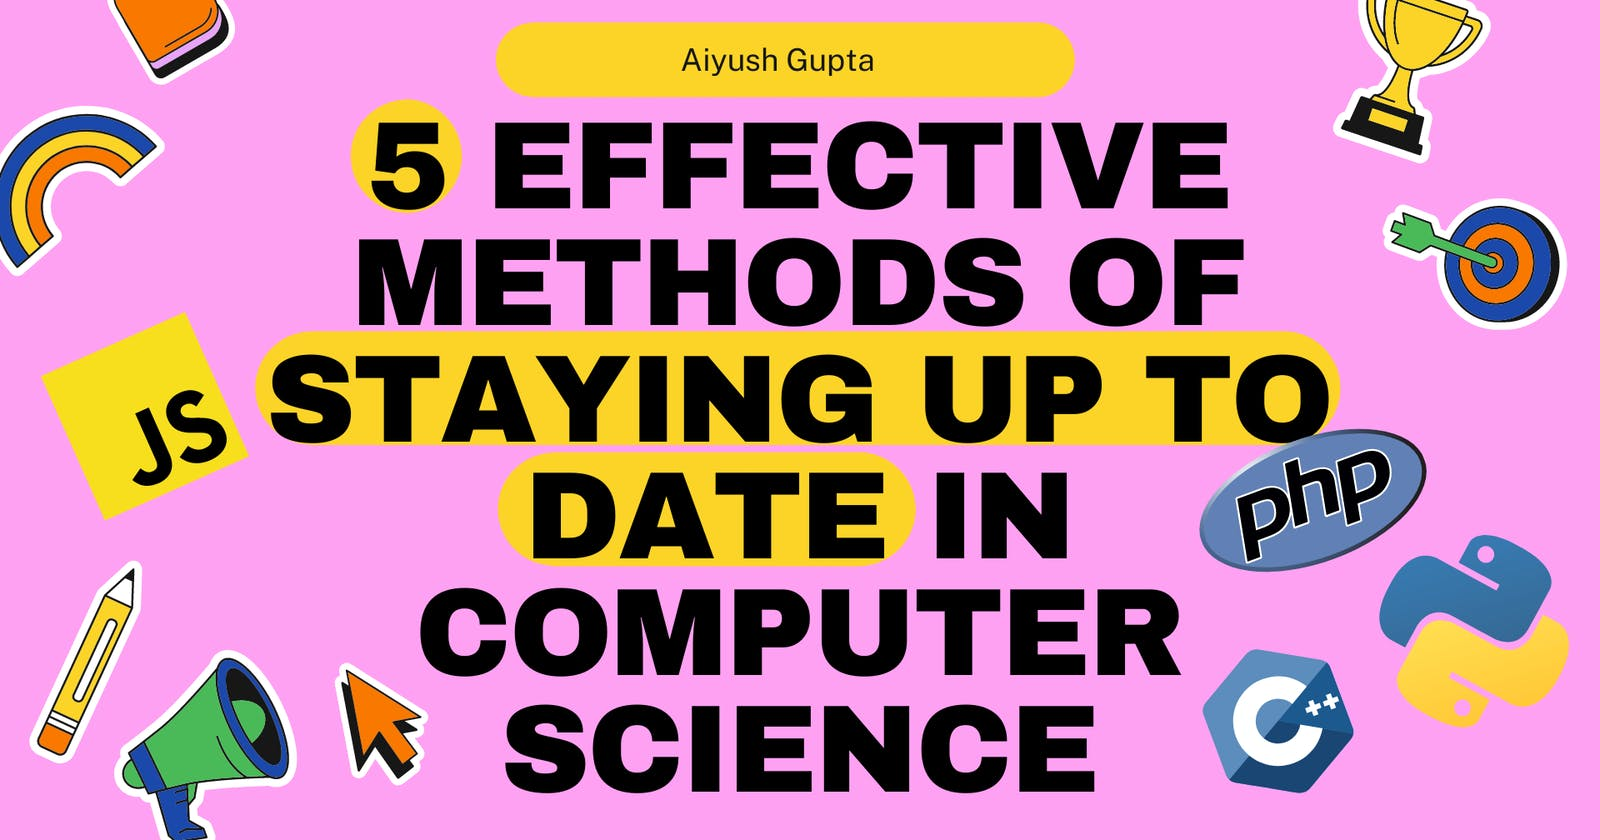 5 Effective Methods of Staying up to Date in Computer Science